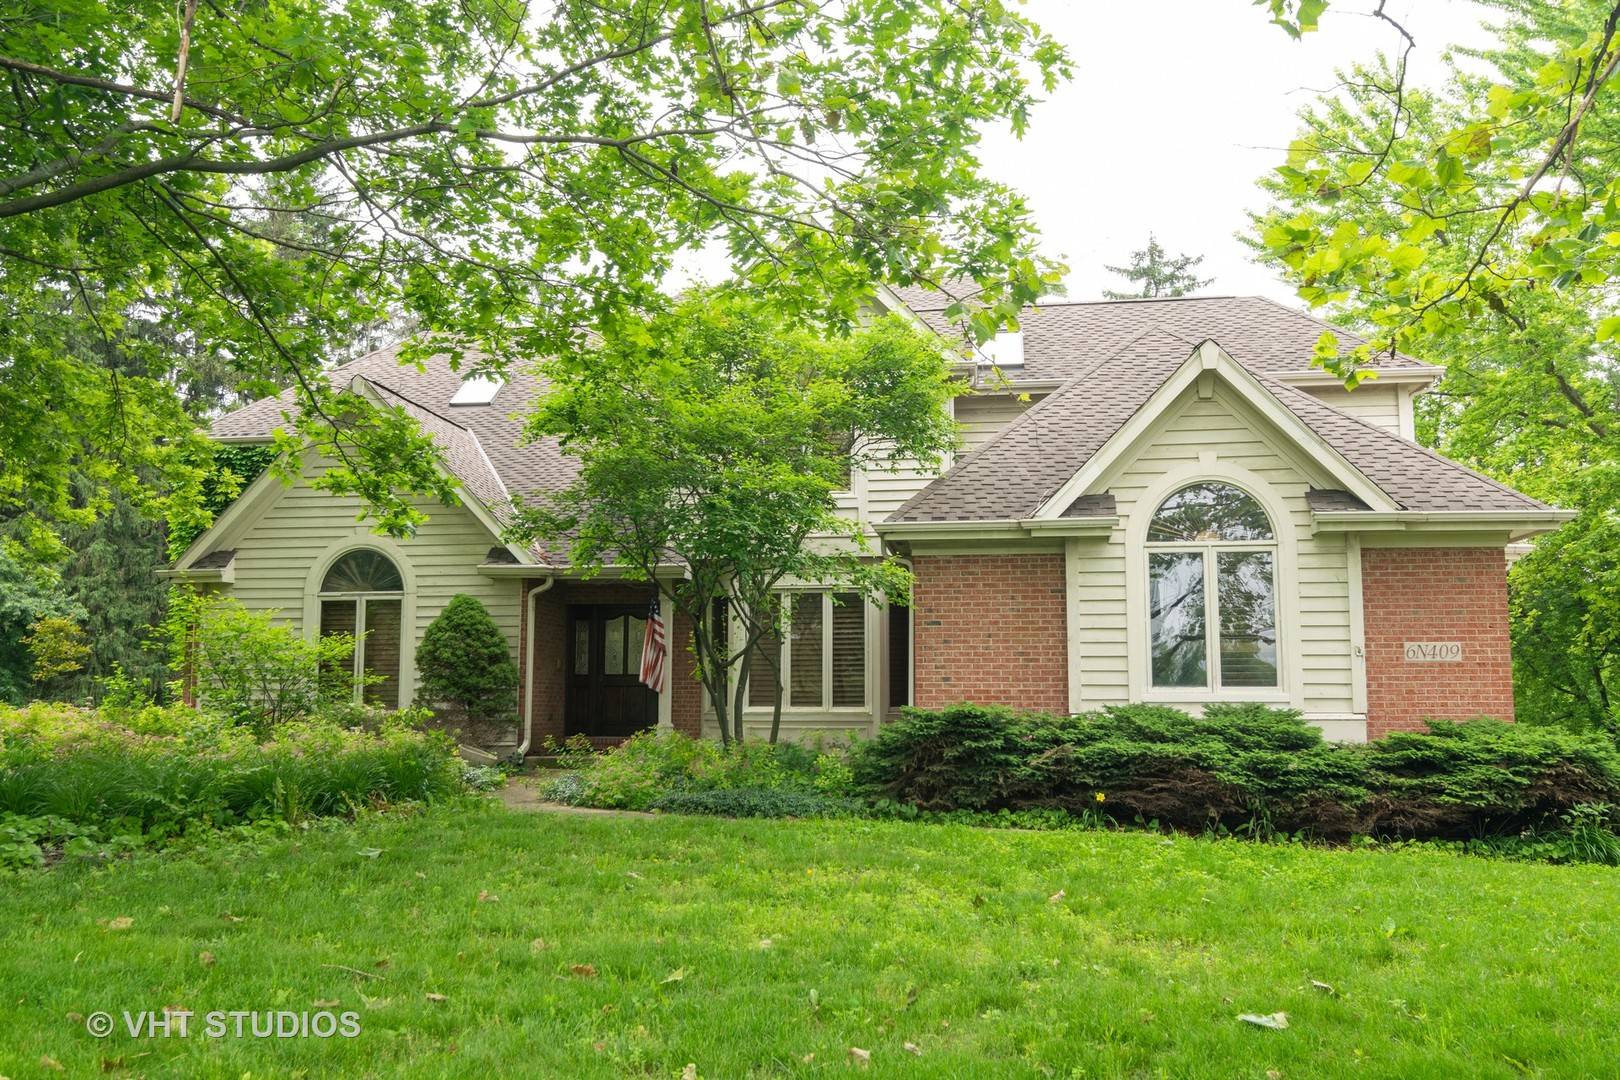 Photo for 6N409 Splitrail Lane, St. Charles, IL 60175 (MLS # 10584556)